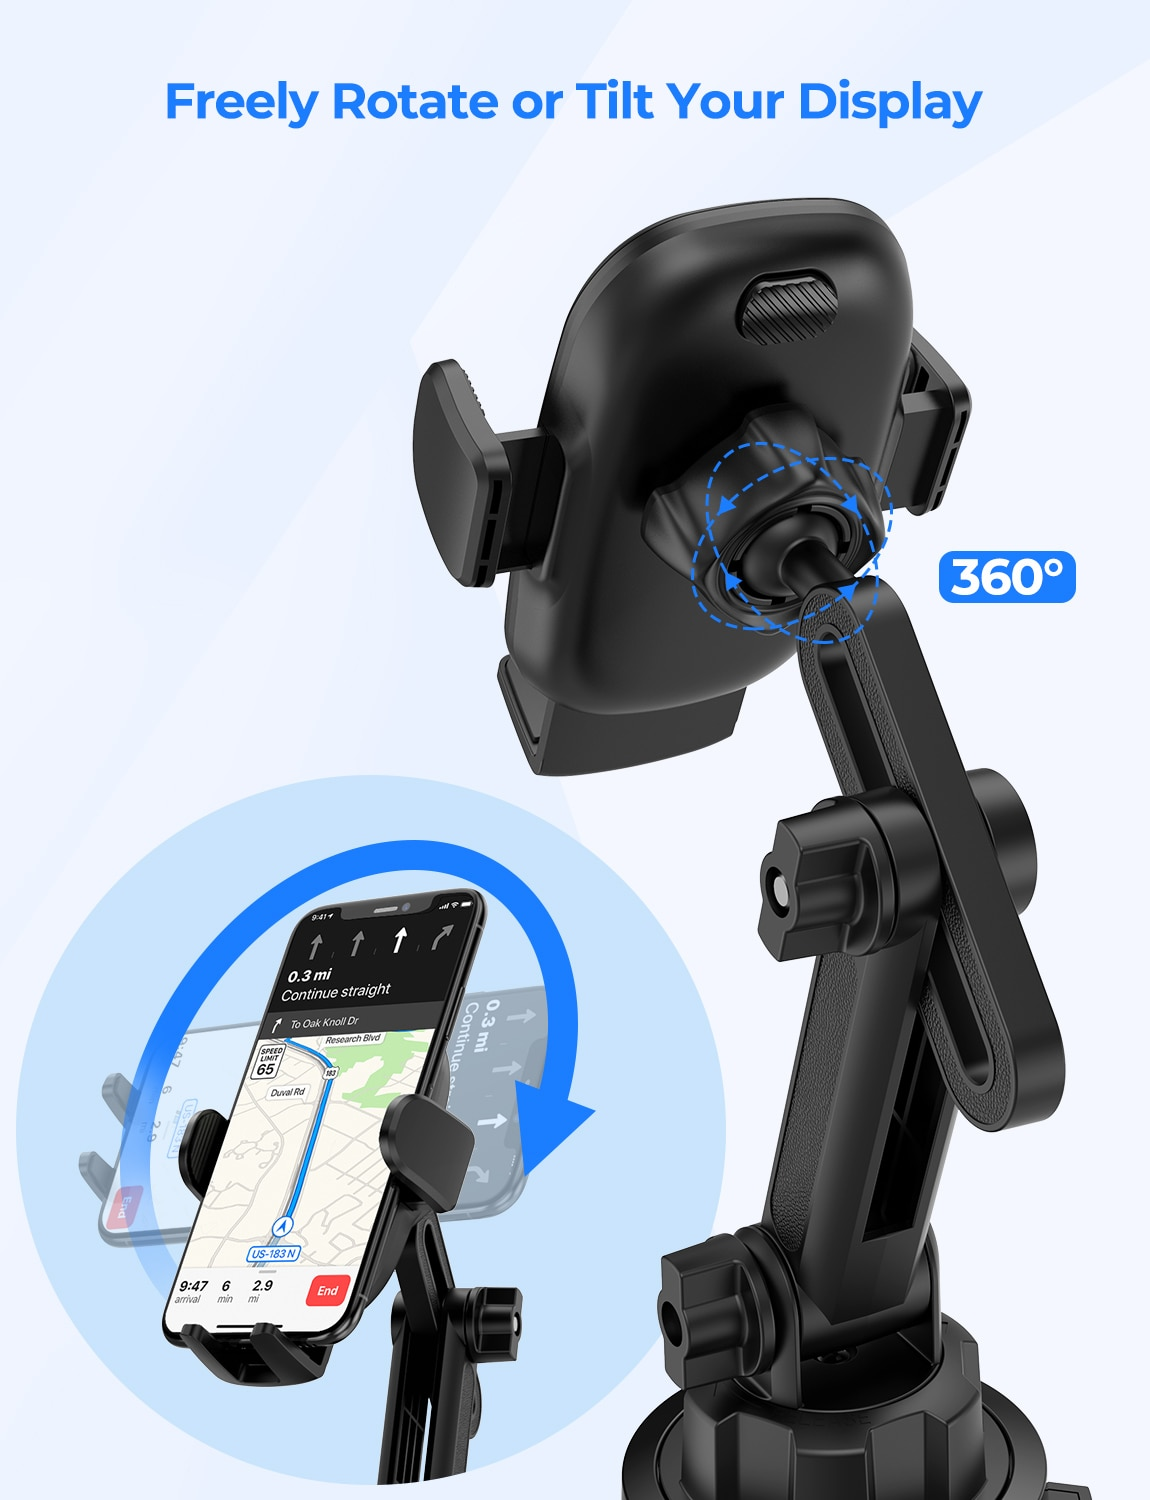 Hd8c50b21dcaa4416955e08c4e7525a3d3 - MPOW CA158 Phone Mount Adjustable Cup Holder Car Mount with Long Gooseneck 360 Degrees Rotation Compatible with iPhone Galaxy